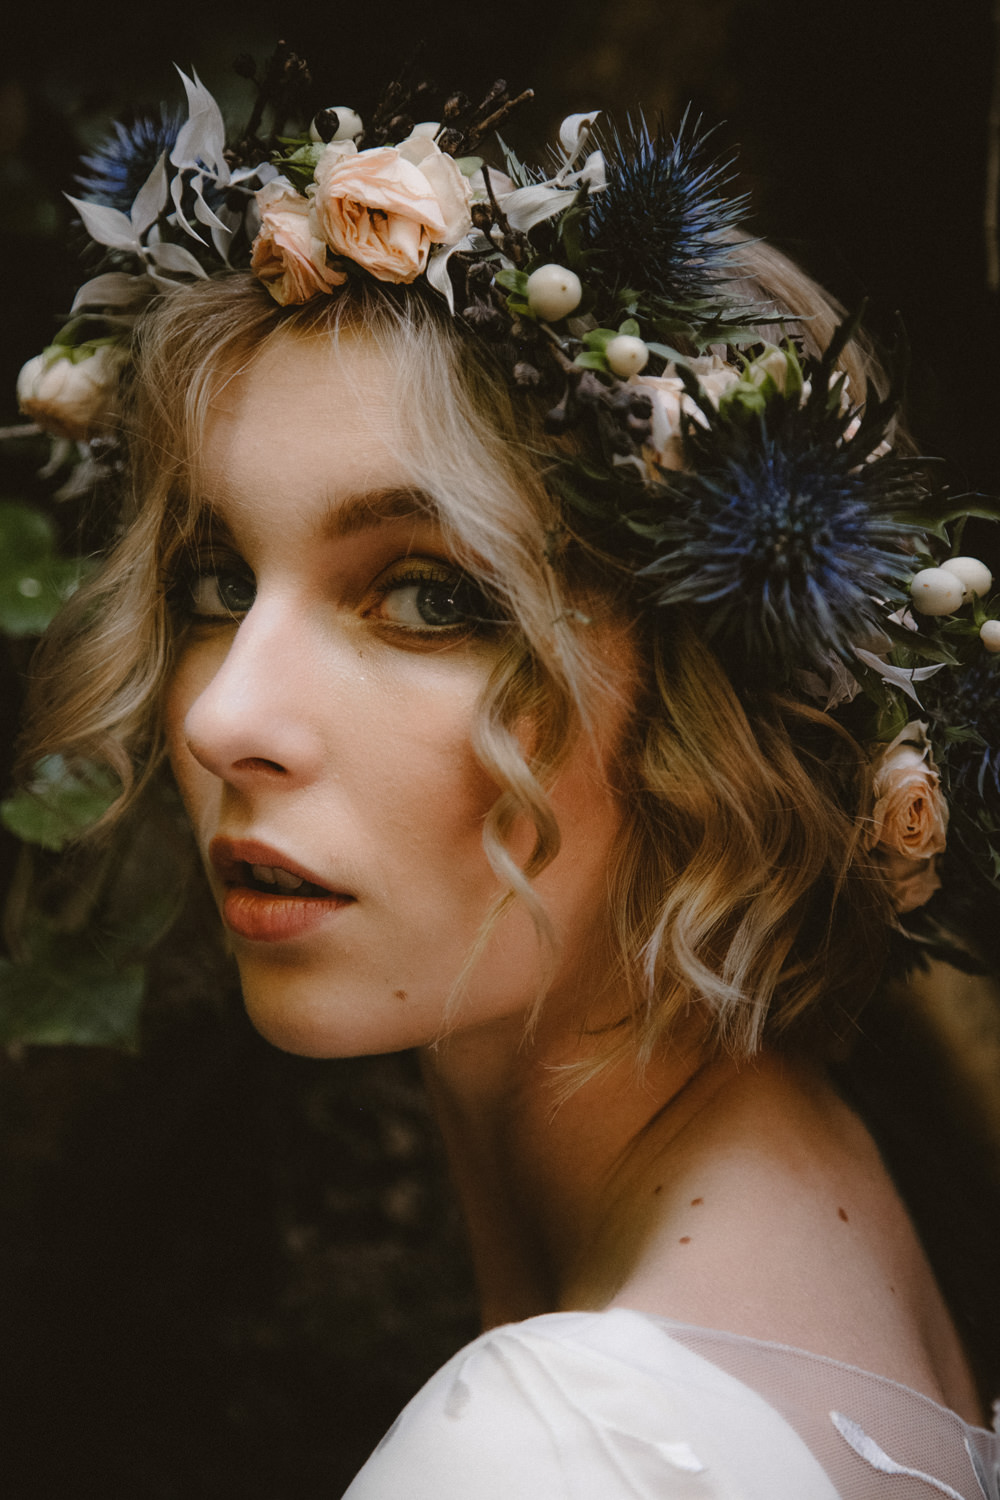 Bride Bridal Flower Crown Make Up Ethereal Candlelit Wedding Ideas Ortica Wedding